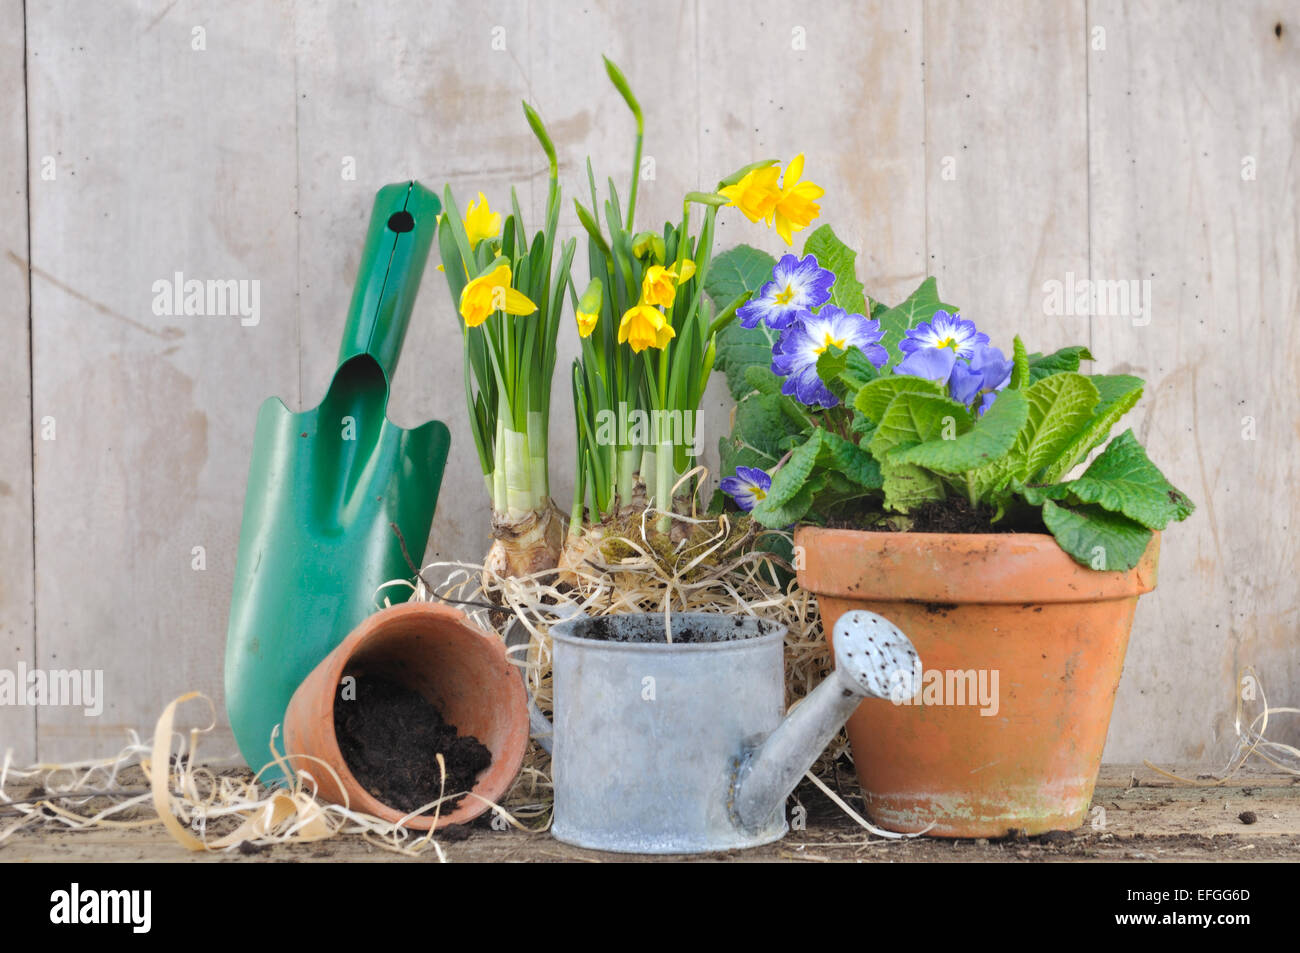 Stock Photo   Spring Flowerpots With Gardening Accessories On Wooden  Background